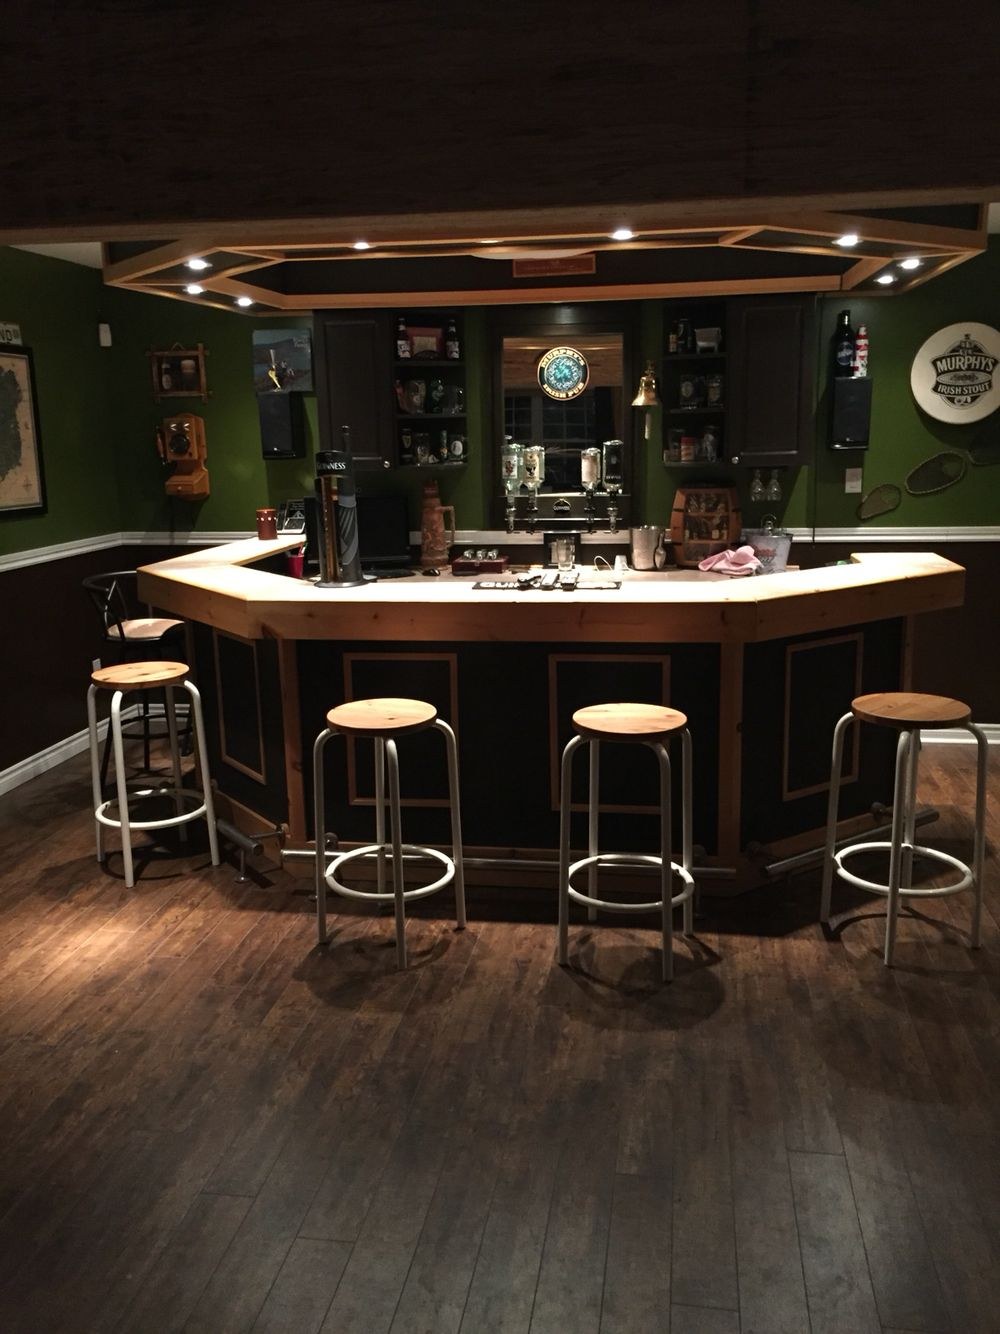 My Irish Pub Bar | Deck, Bar,Backyard, Basement Ideas | Pinterest ...